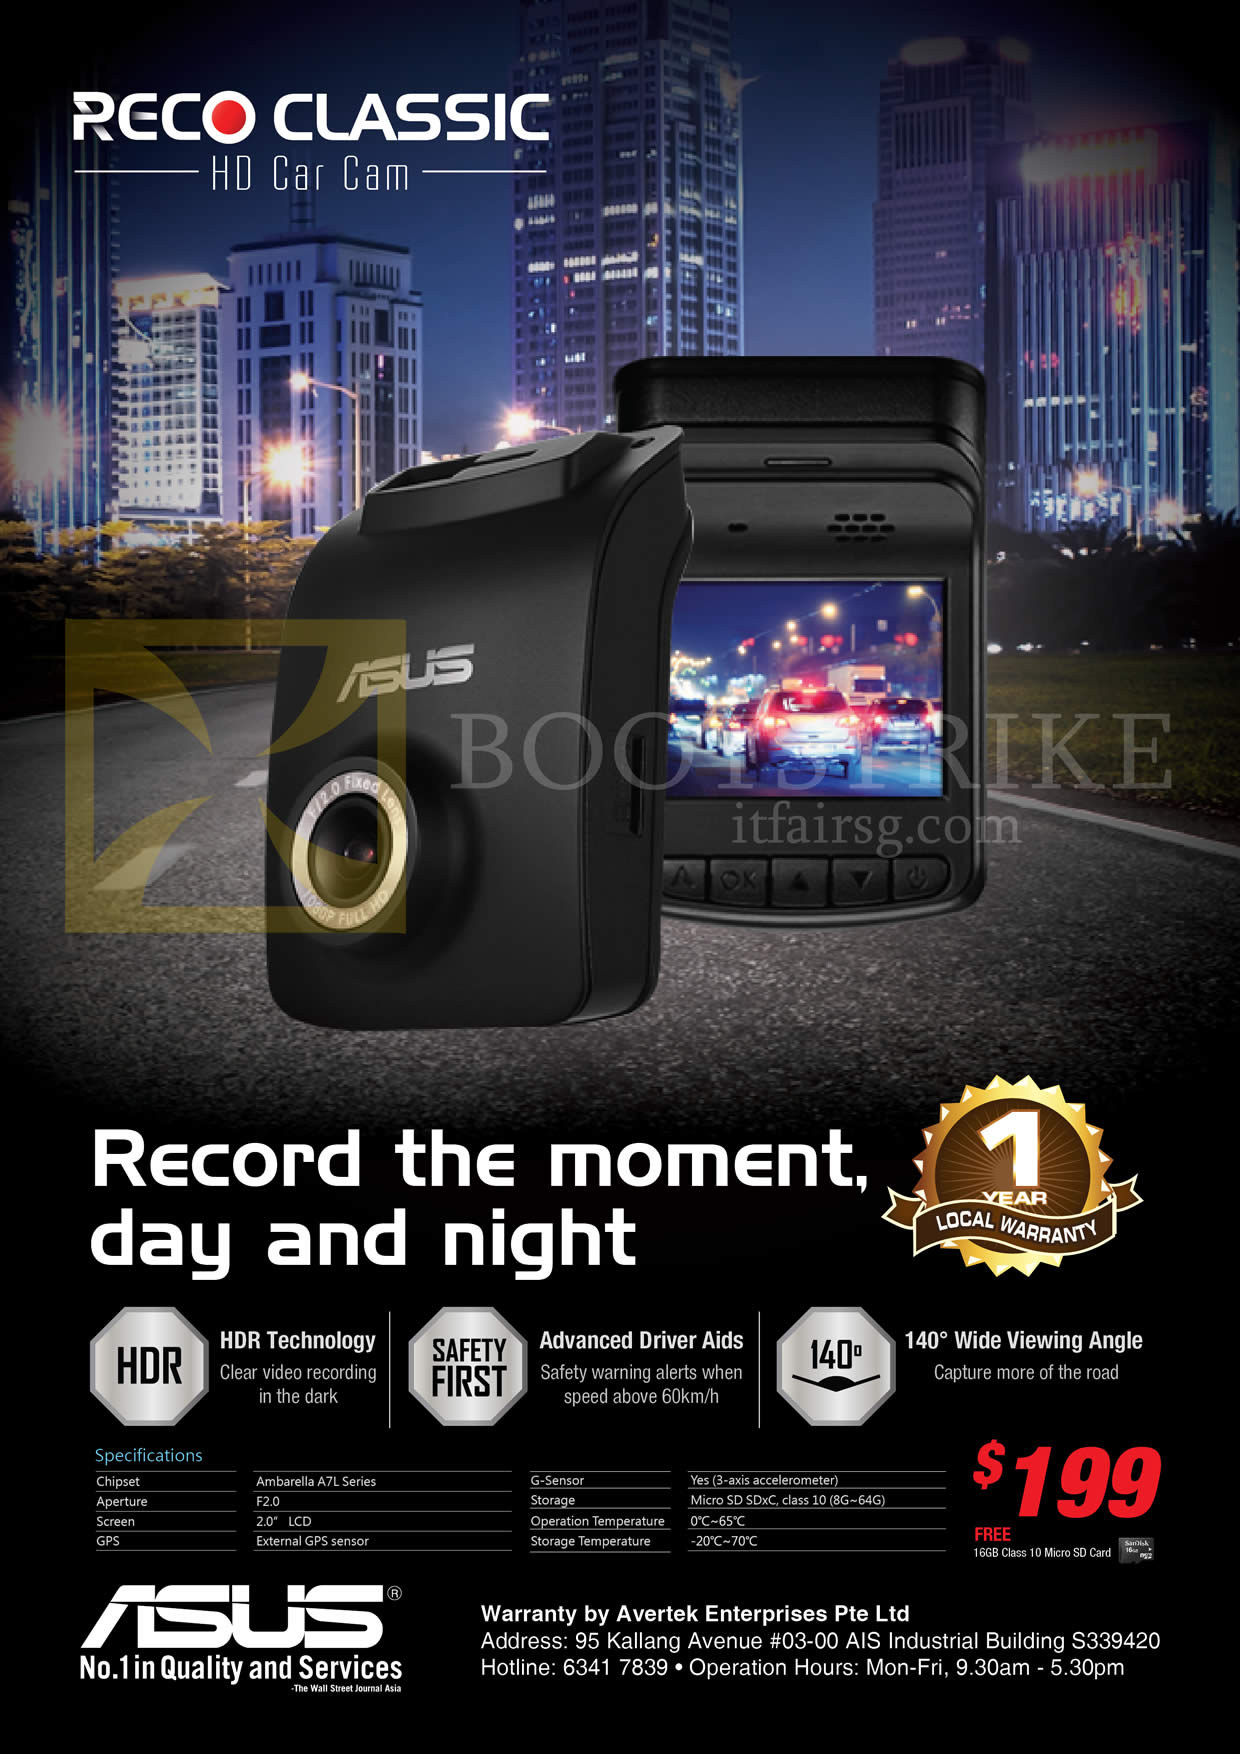 SITEX 2015 price list image brochure of ASUS Reco Classic HD Car Cam